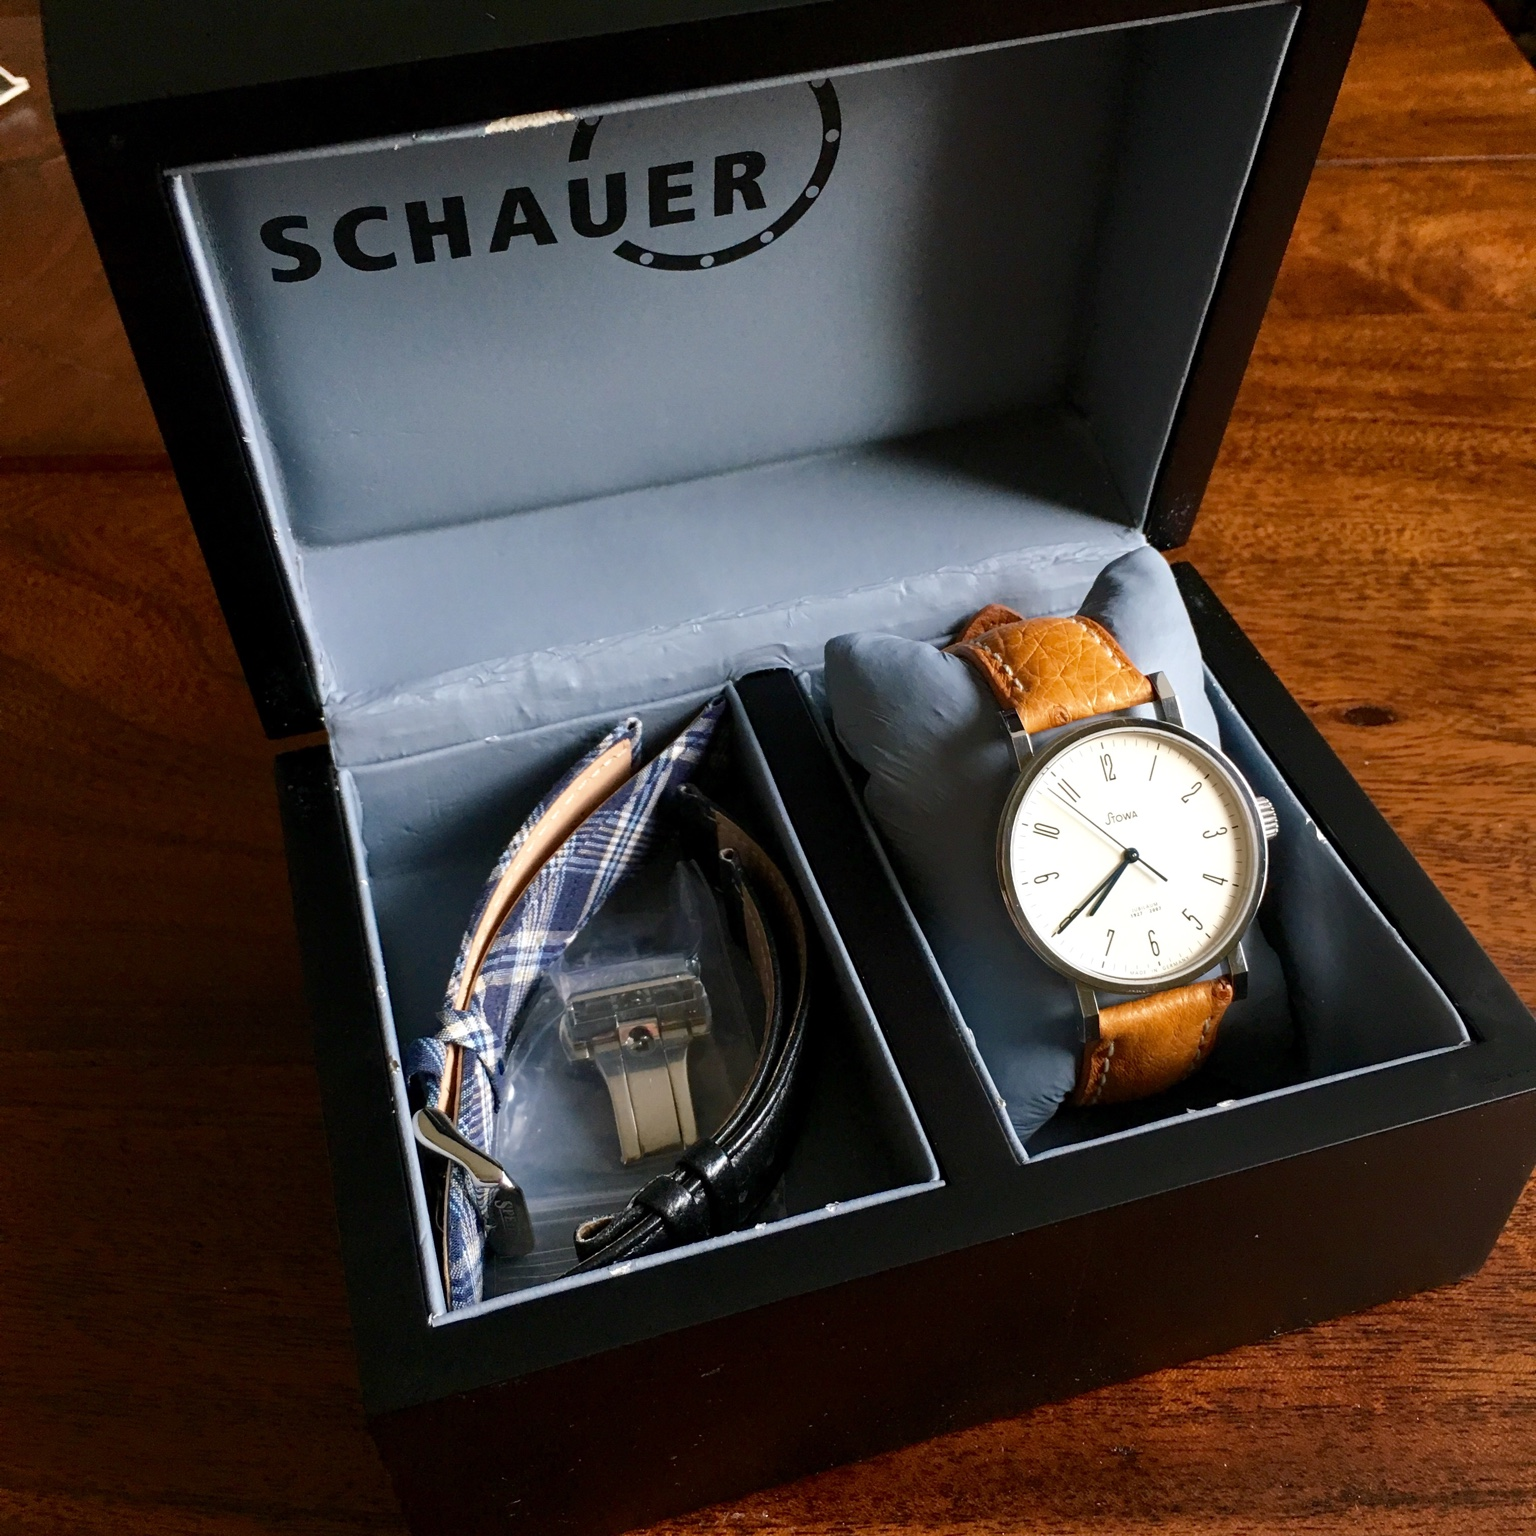 image this schauer click bar eta view sold of to the watches original blue kleine